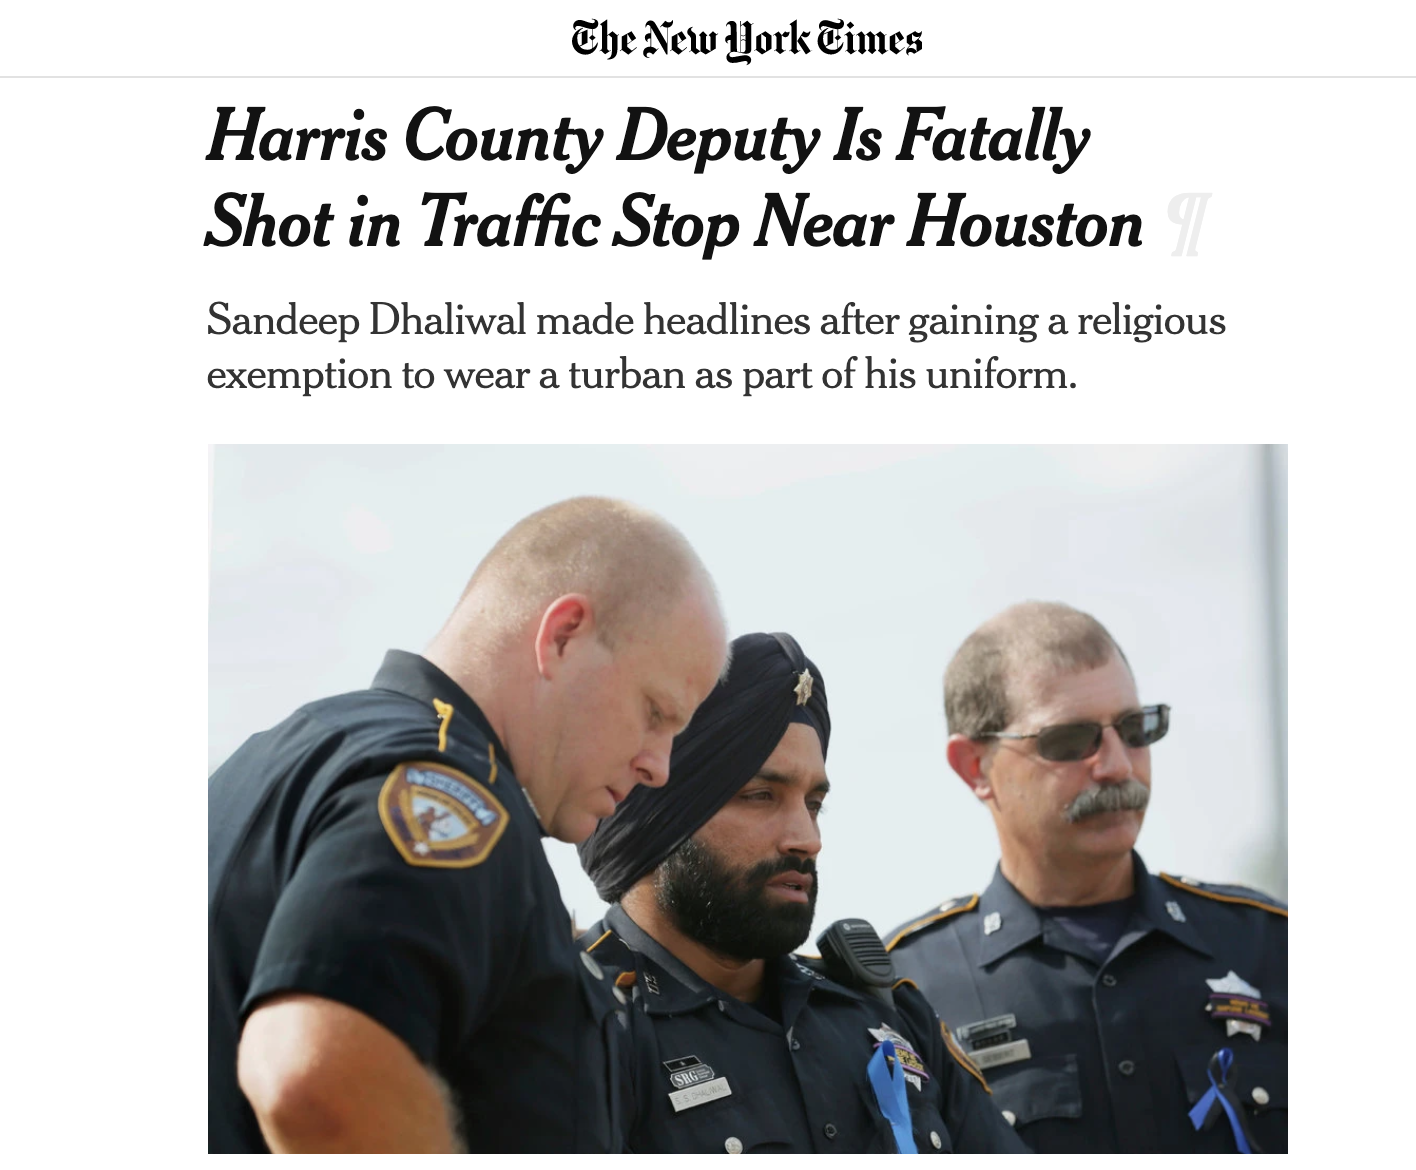 Harris County Deputy Is Fatally Shot in Traffic Stop Near Houston - Contributing reporter, The New York Times